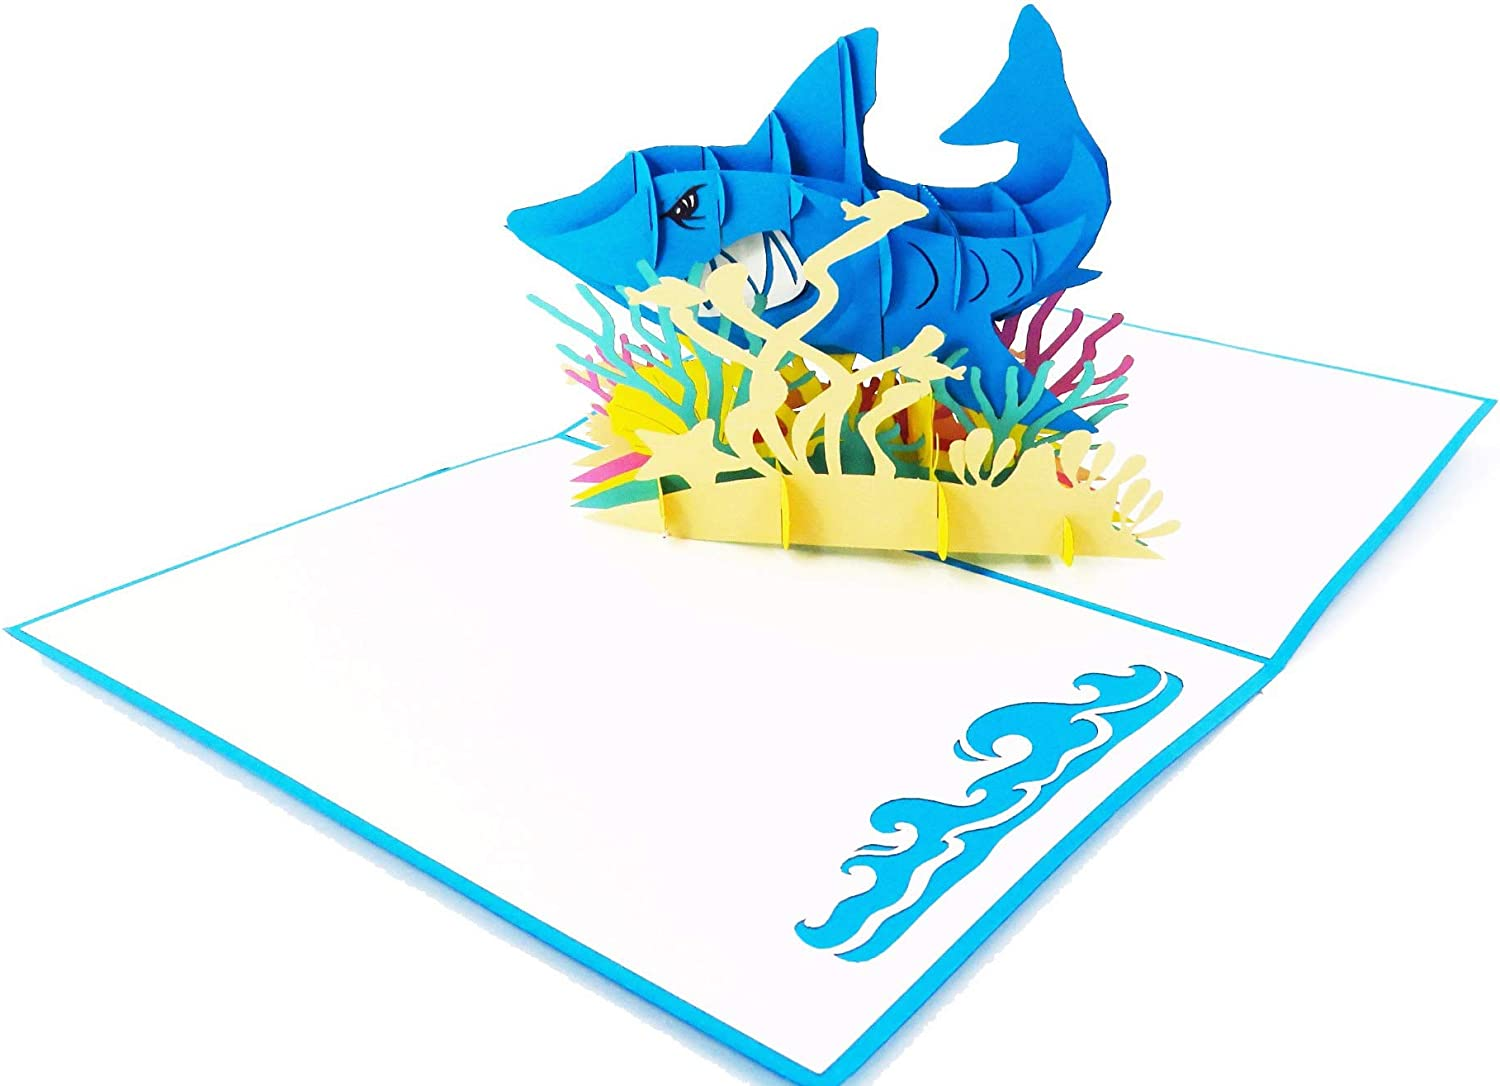 White Shark Pop Up Card, 3D Popup Greeting Card - Ocean Birthday Pop Up Card, Congratulations, Thank you, Get Well for Friend, for son, for husband, for children | Pop Card Express